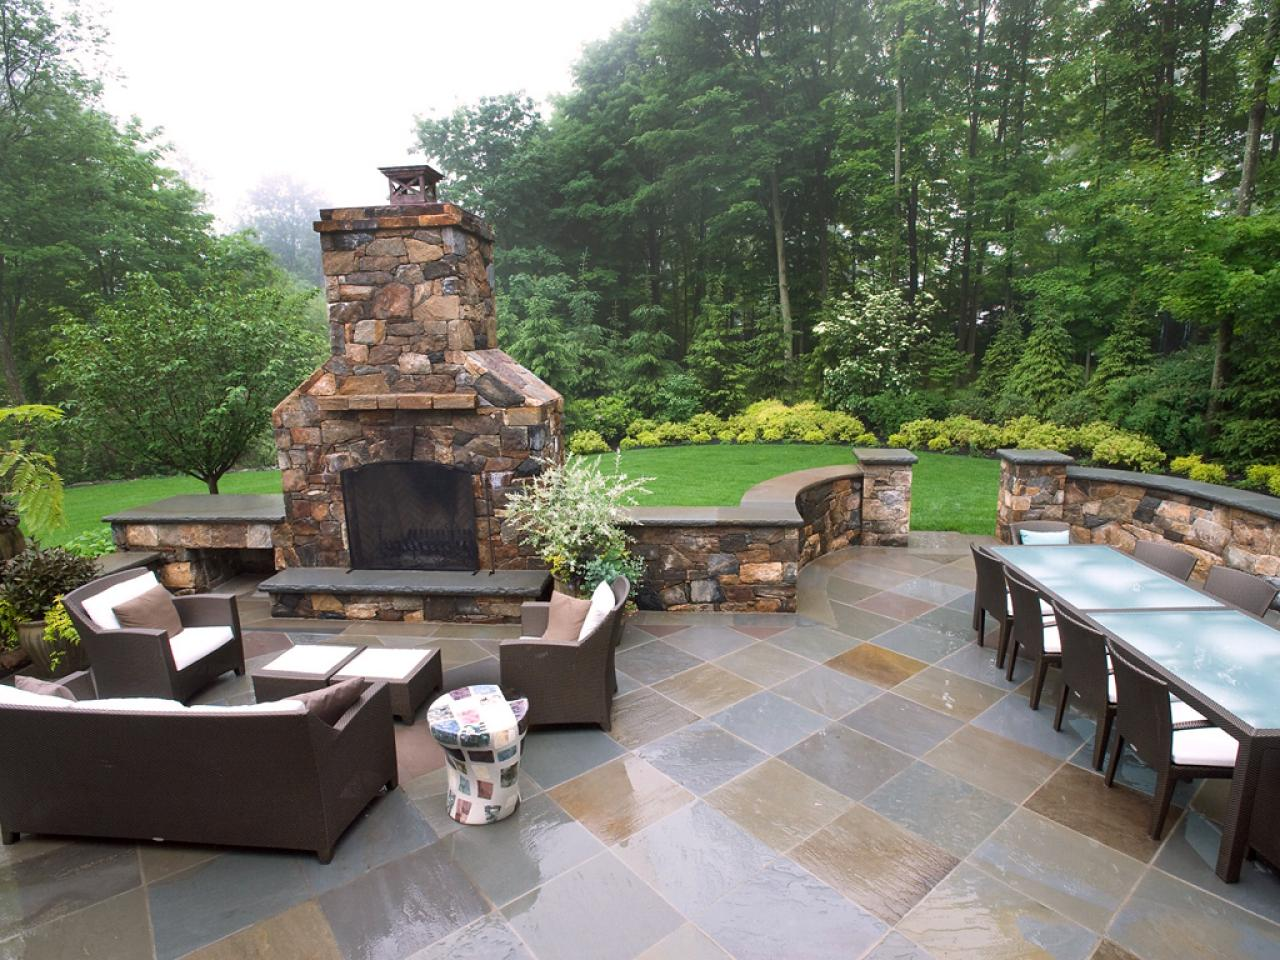 Patio Design & Installation-Carrollton TX Professional Landscapers & Outdoor Living Designs-We offer Landscape Design, Outdoor Patios & Pergolas, Outdoor Living Spaces, Stonescapes, Residential & Commercial Landscaping, Irrigation Installation & Repairs, Drainage Systems, Landscape Lighting, Outdoor Living Spaces, Tree Service, Lawn Service, and more.